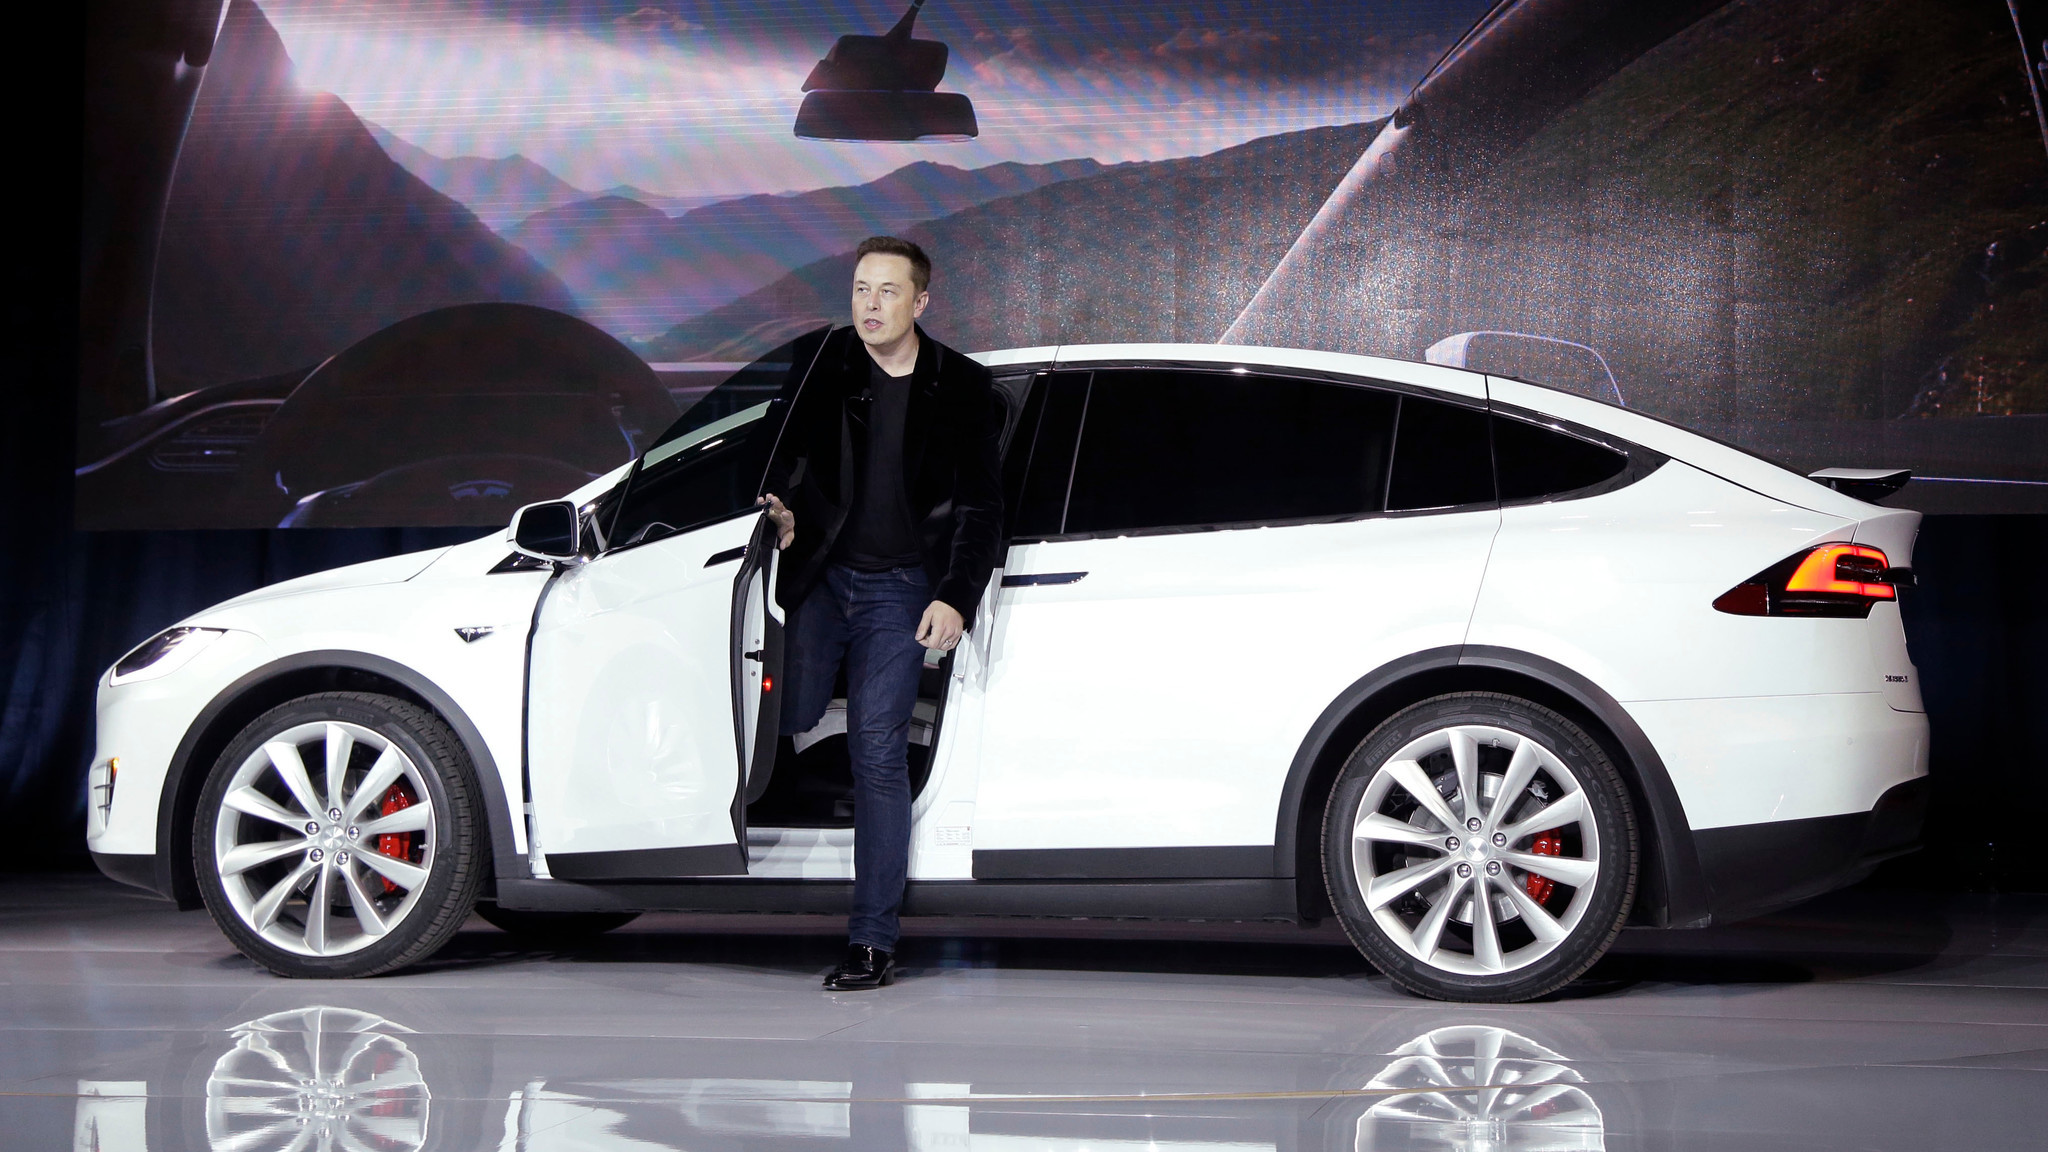 Elon Musk, CEO of Tesla Motors, introduces the carmaker's Model X at the company's manufacturing plant in Fremont, Calif., in September 2015.